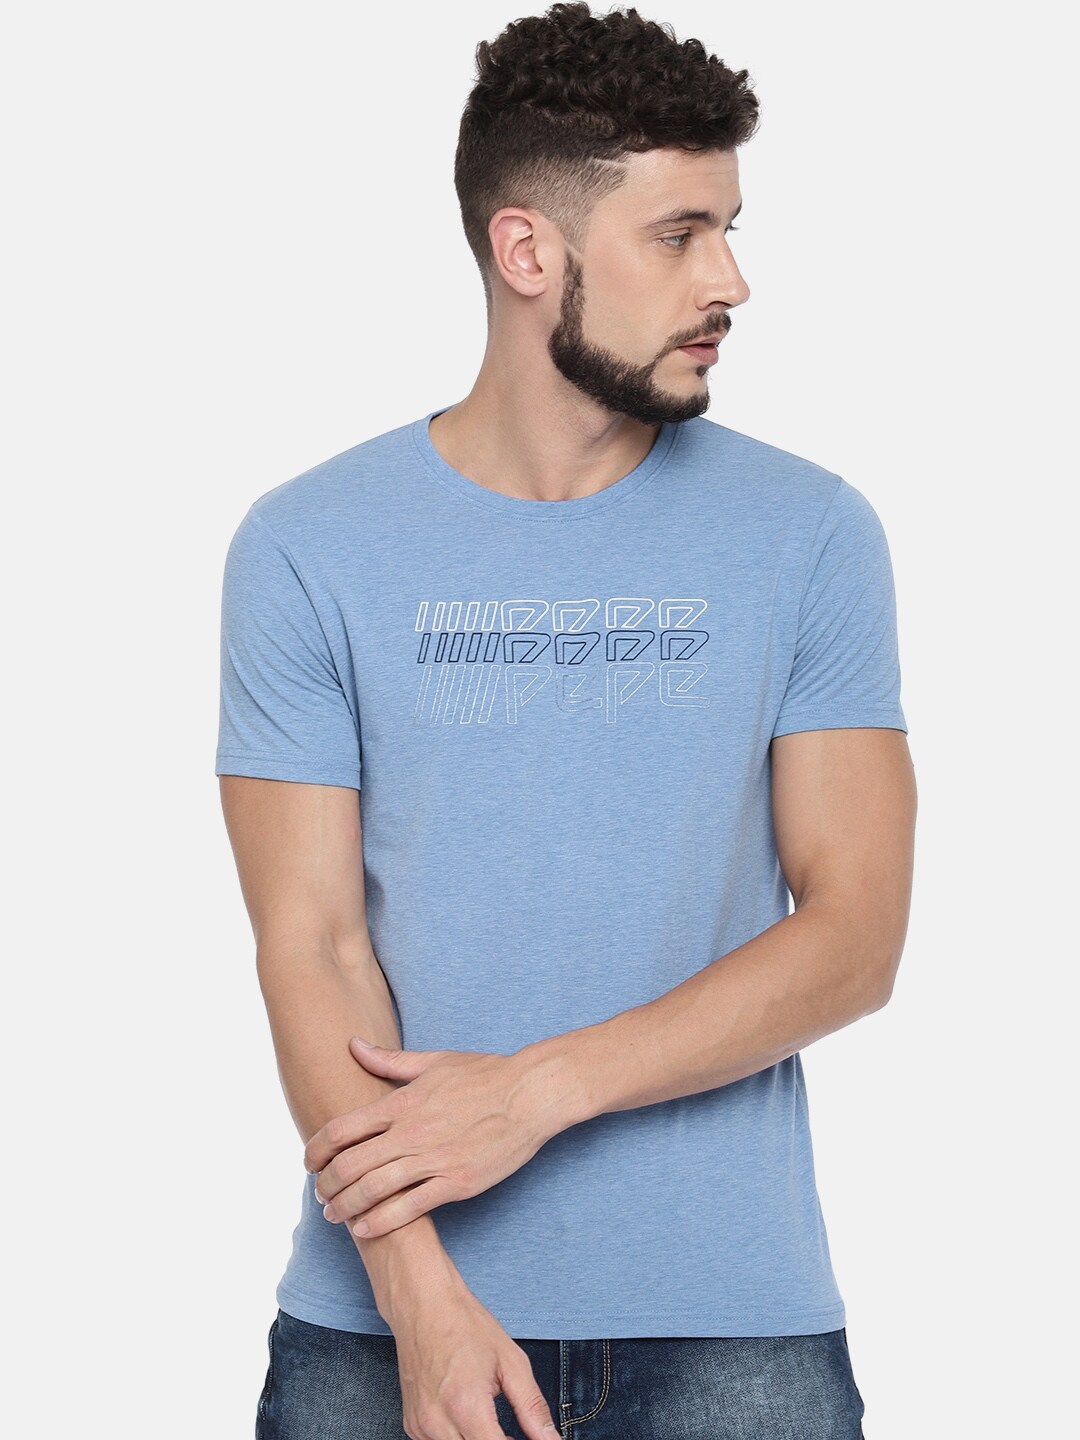 20896f0f00fa Pepe Jeans Sports Tshirts - Buy Pepe Jeans Sports Tshirts online in India